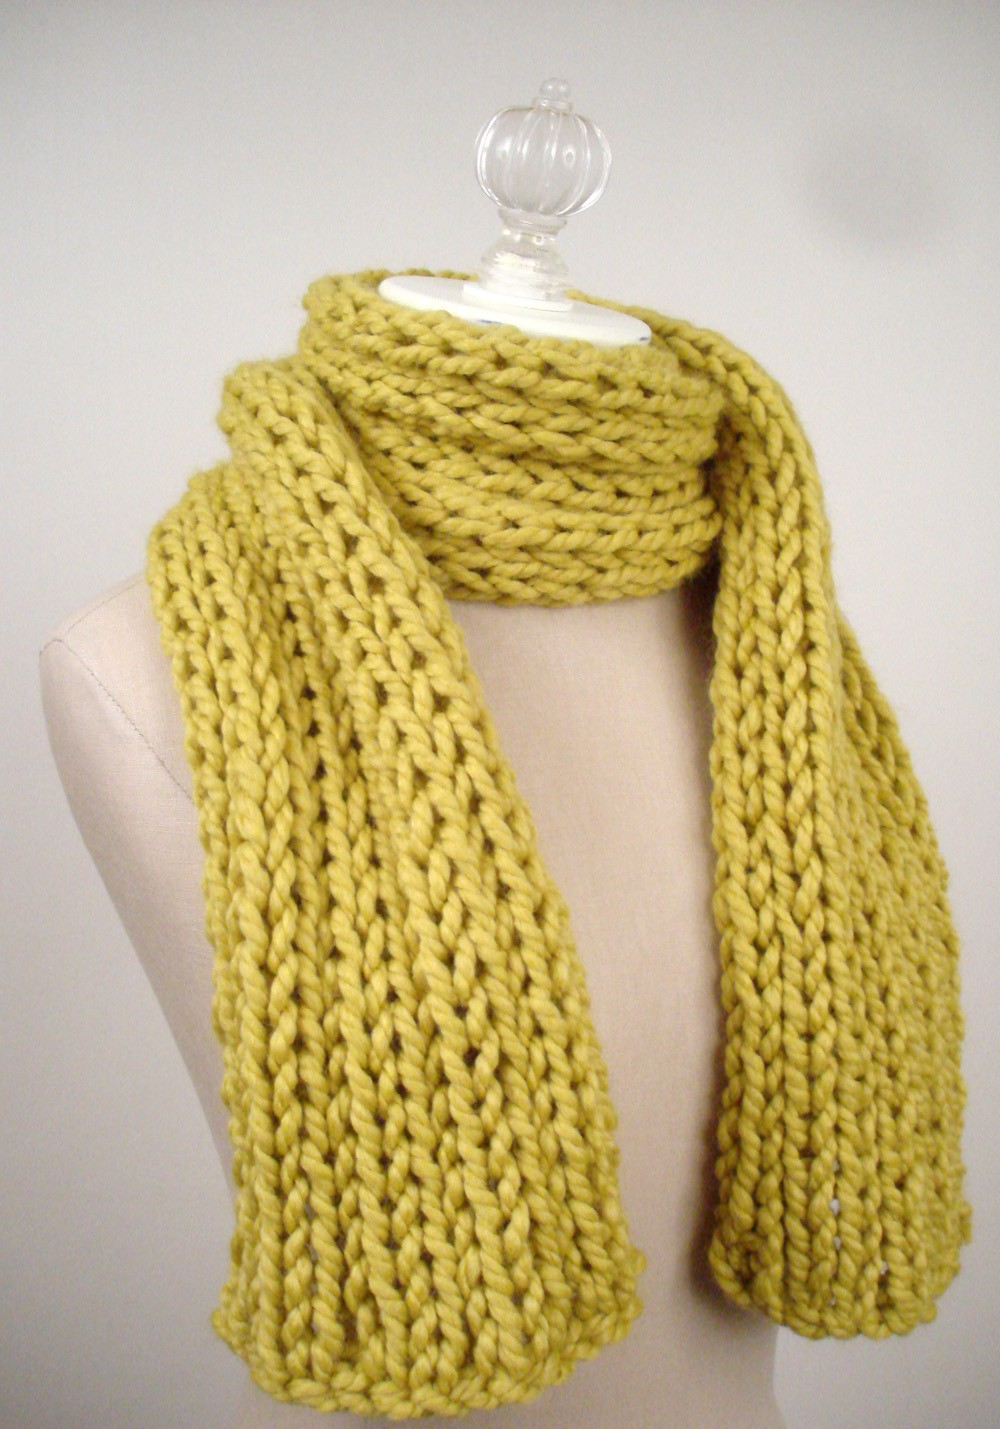 Simple Lace Knitting Pattern For Scarf : EASY KNIT SCARF PATTERNS   Free Patterns